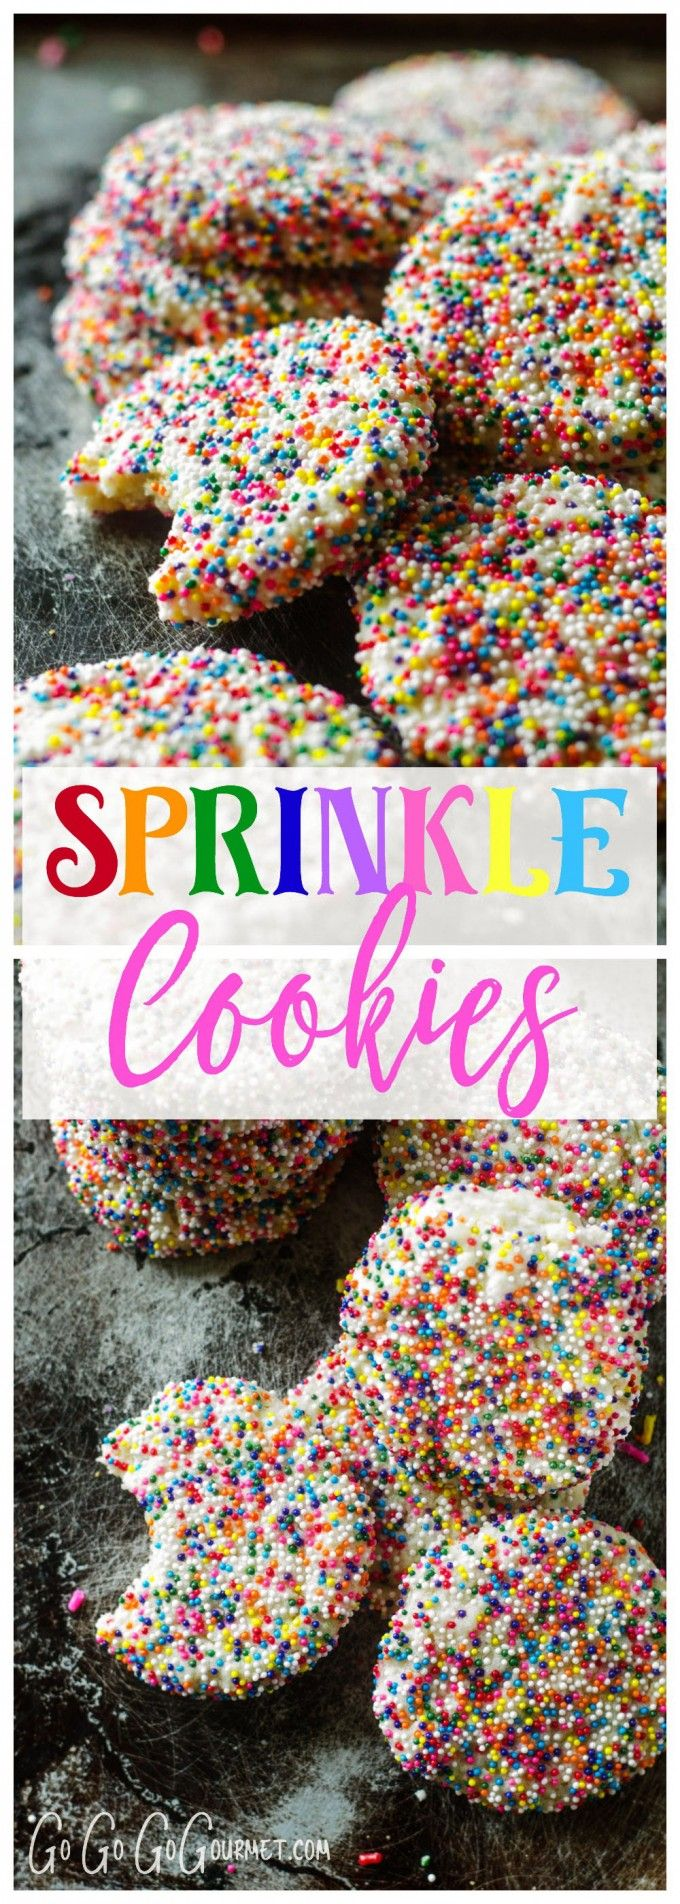 You can never have too many sprinkles! | Sprinkle Cookies via @gogogogourmet